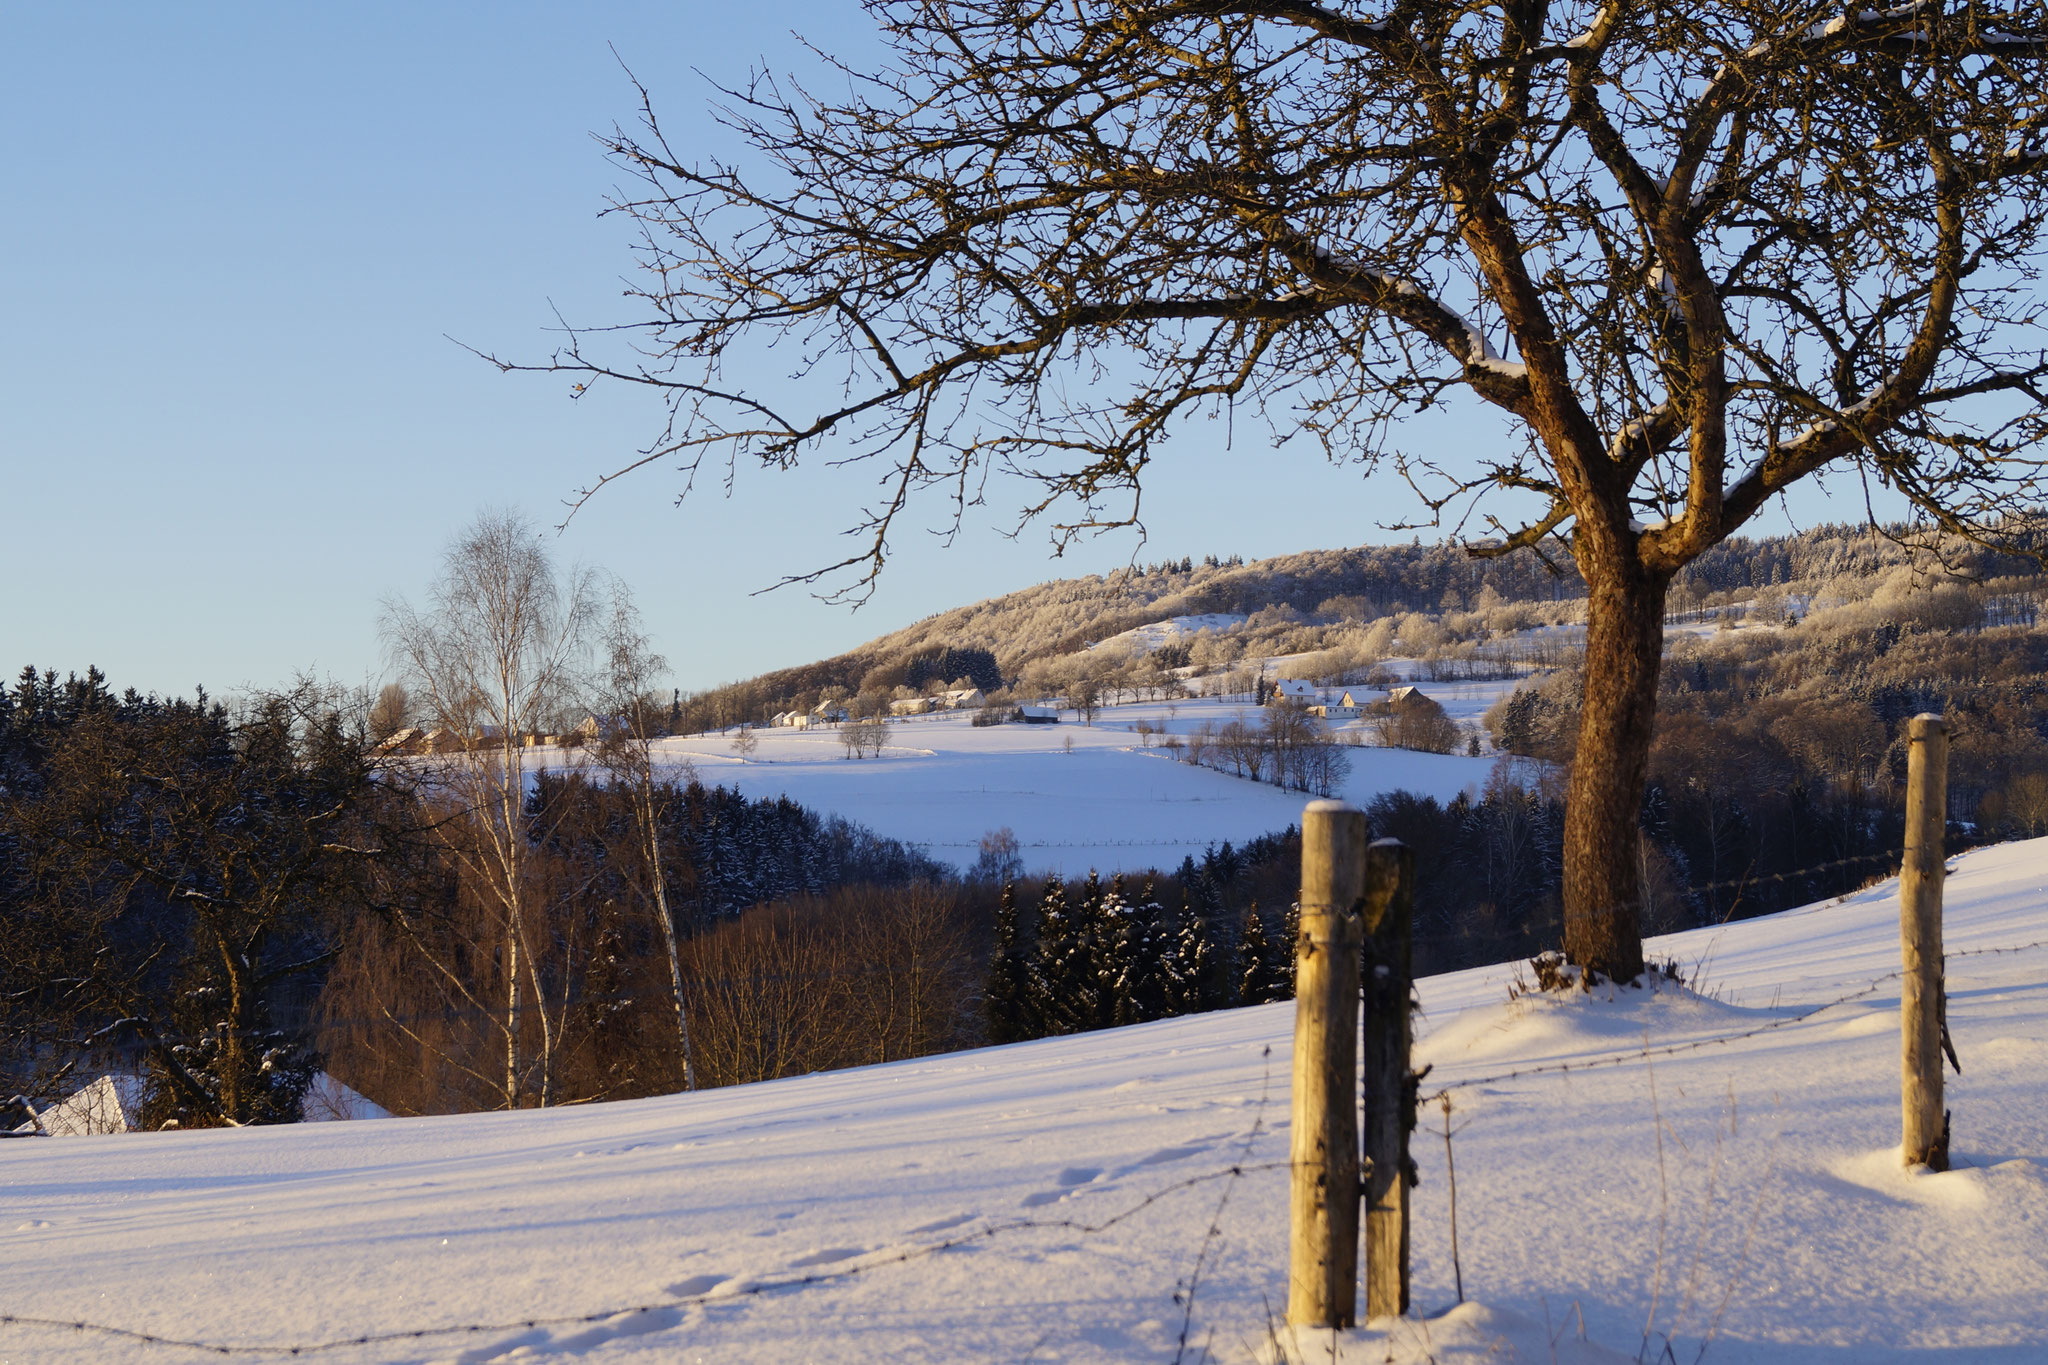 Winter in der Rhön - bei Sandberg